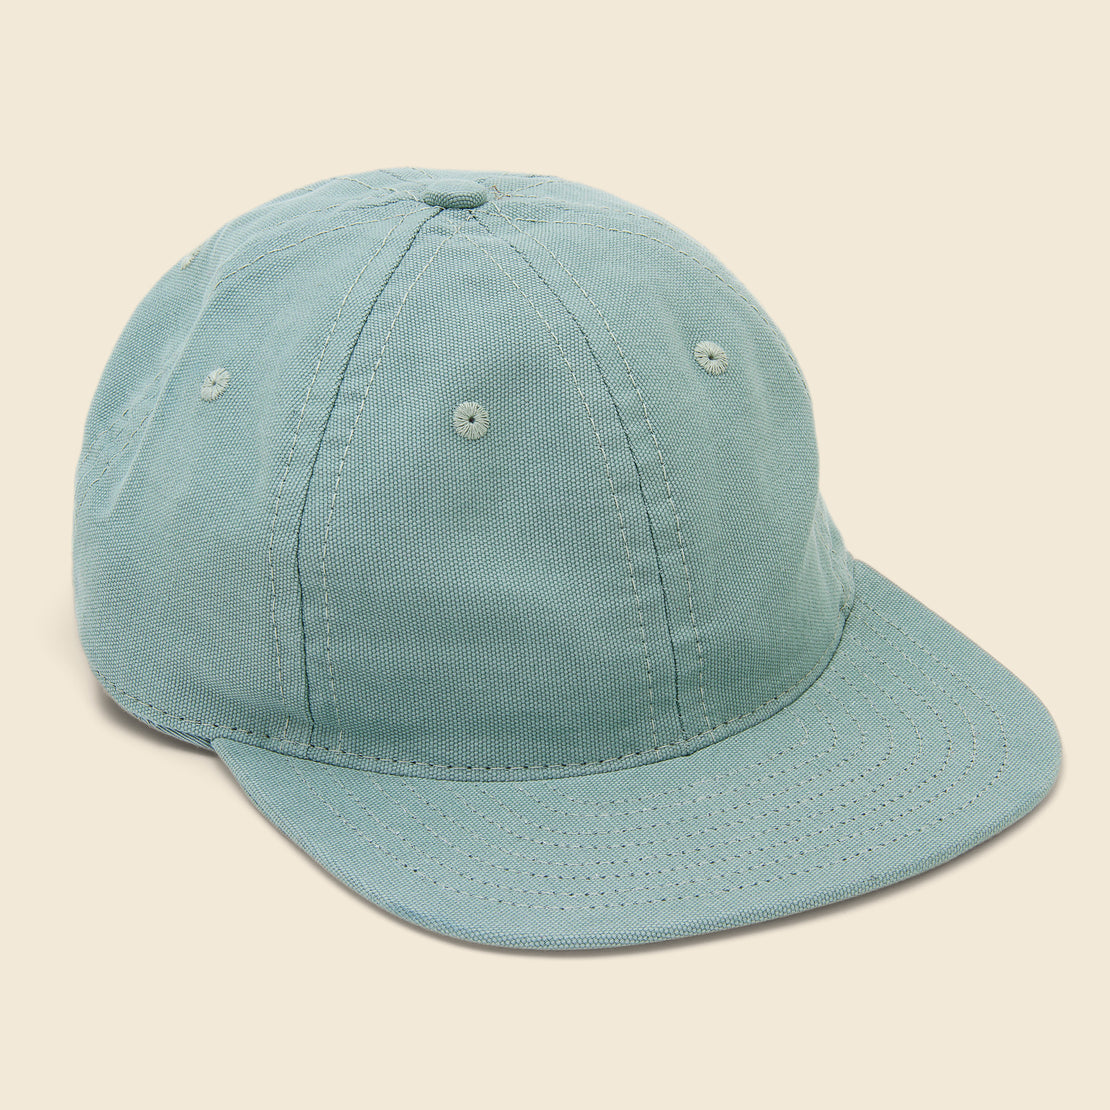 Save Khaki Canvas Cap - Dew